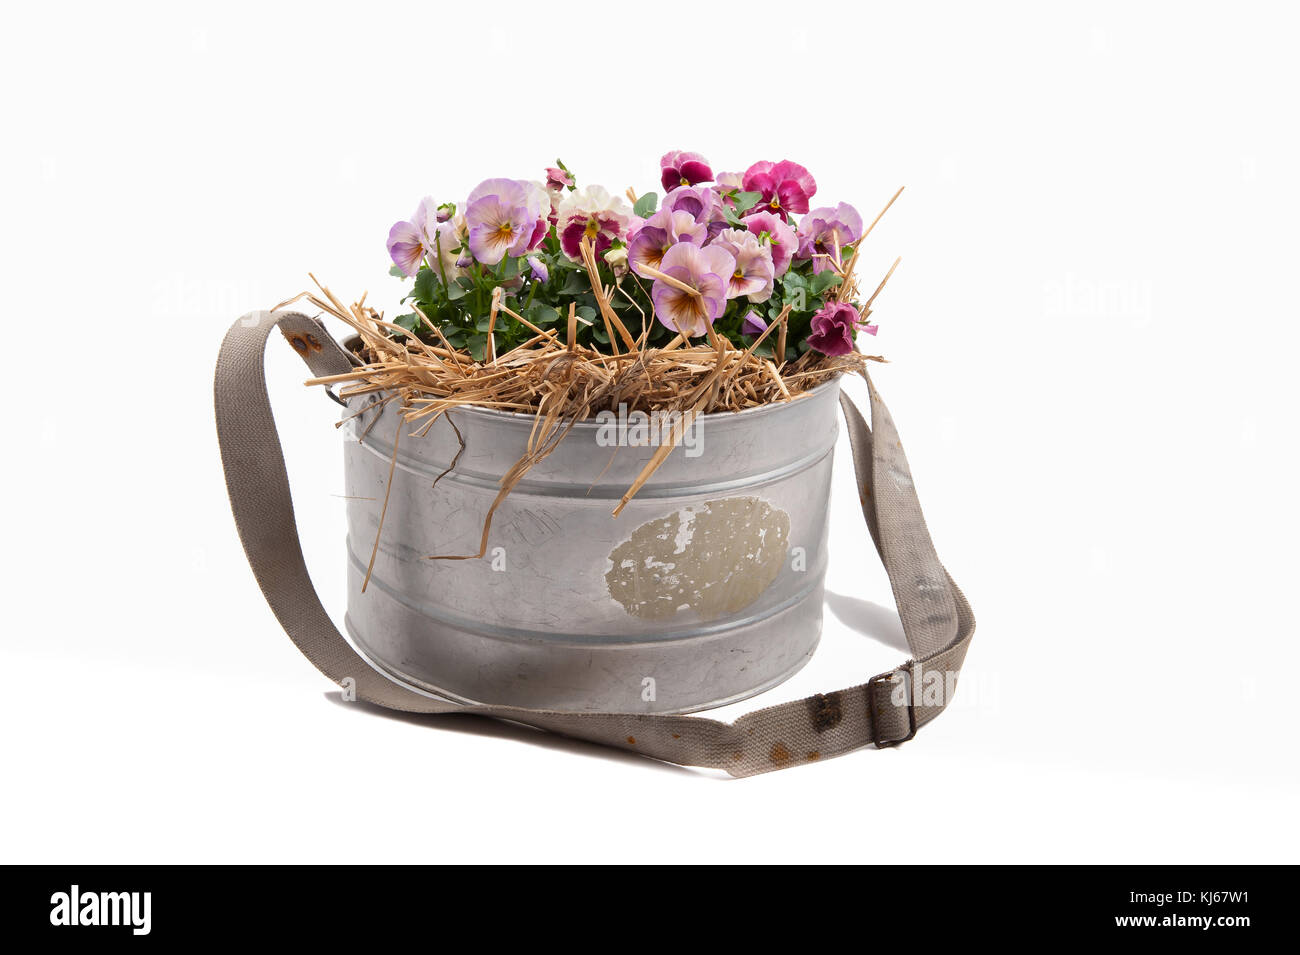 Zinc galvanized basket with pansies and straw isolated on white - Stock Image